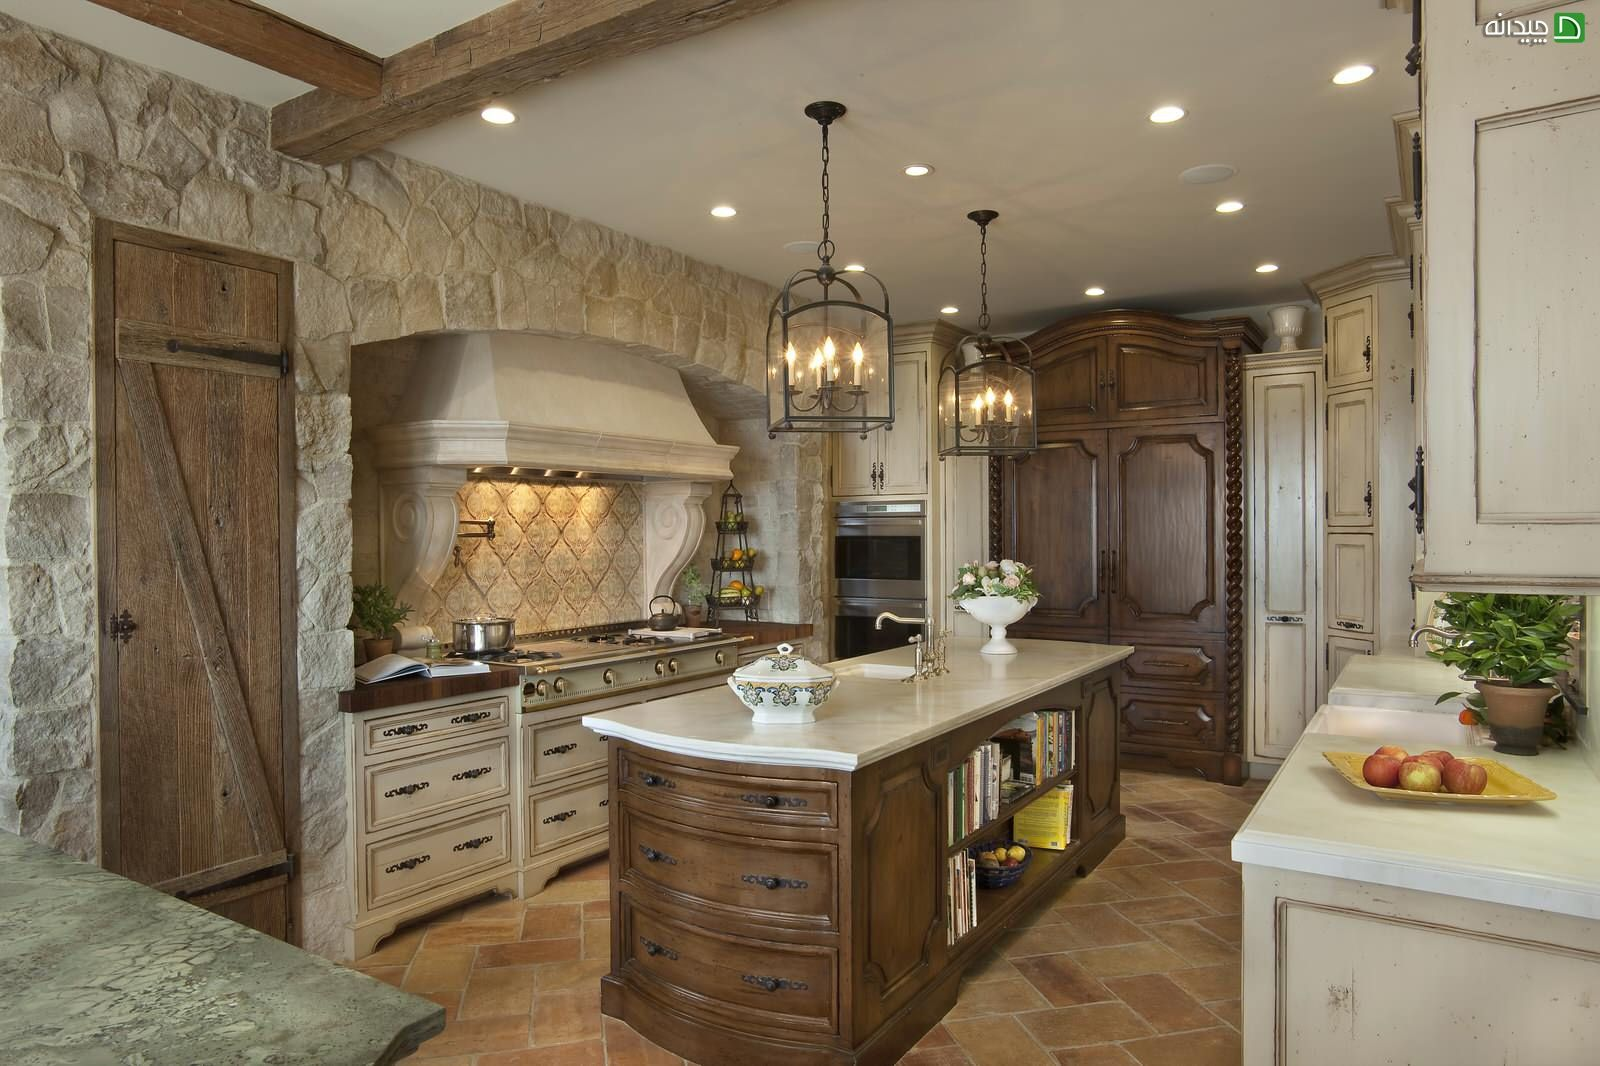 French country exquisite style for the natural trimmed kitchen